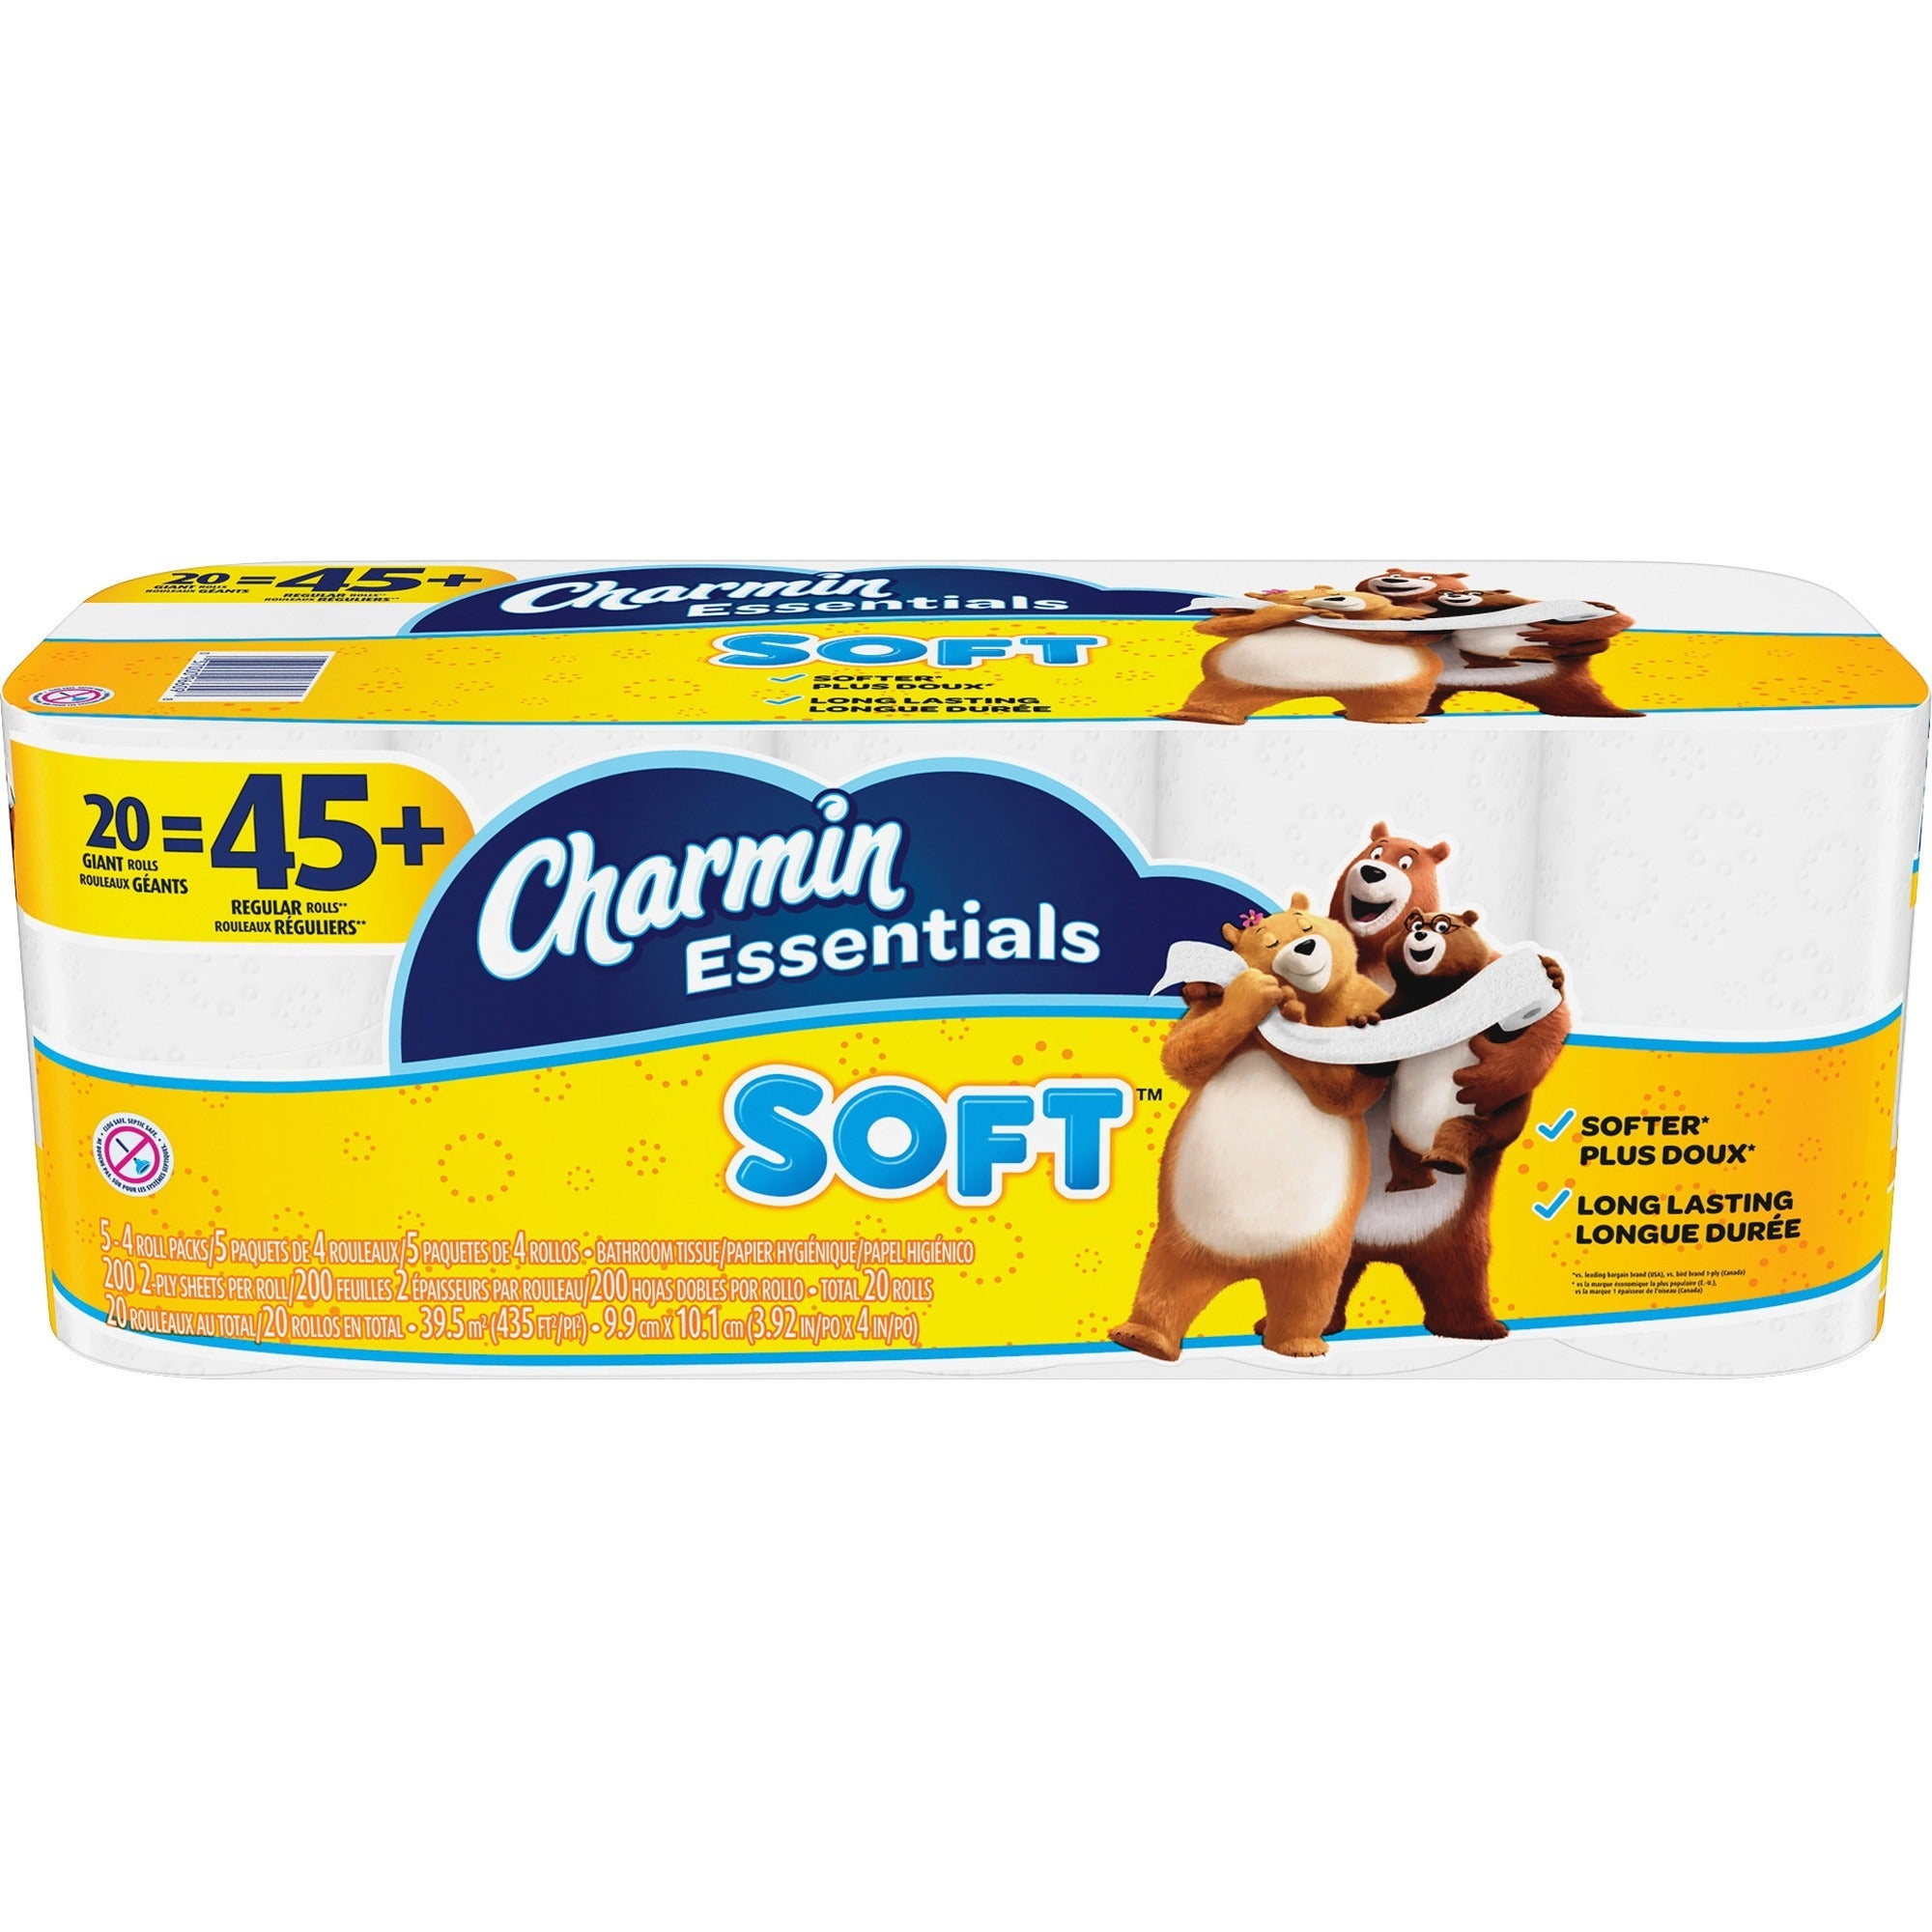 Charmin Essentials Soft Bath Tissue Giant Toilet Paper 20/pack